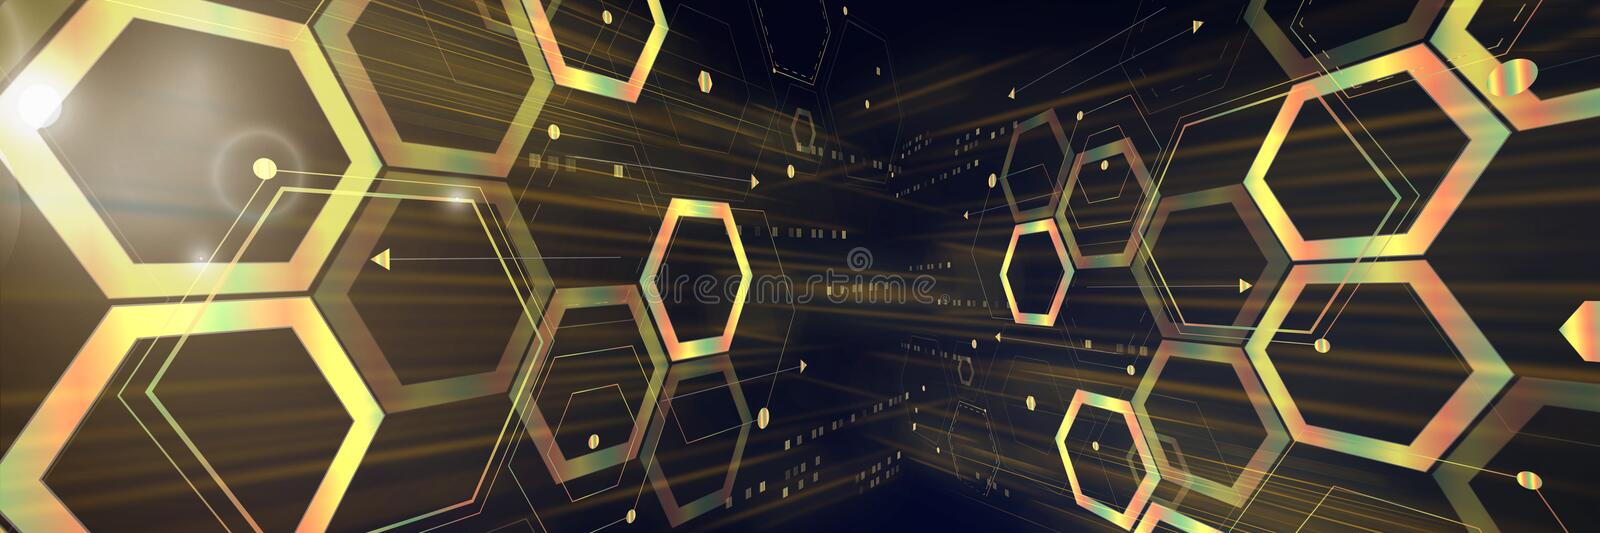 Abstract geometric futuristic digital technology and science background. Abstract futuristic digital technology and science background stock photos